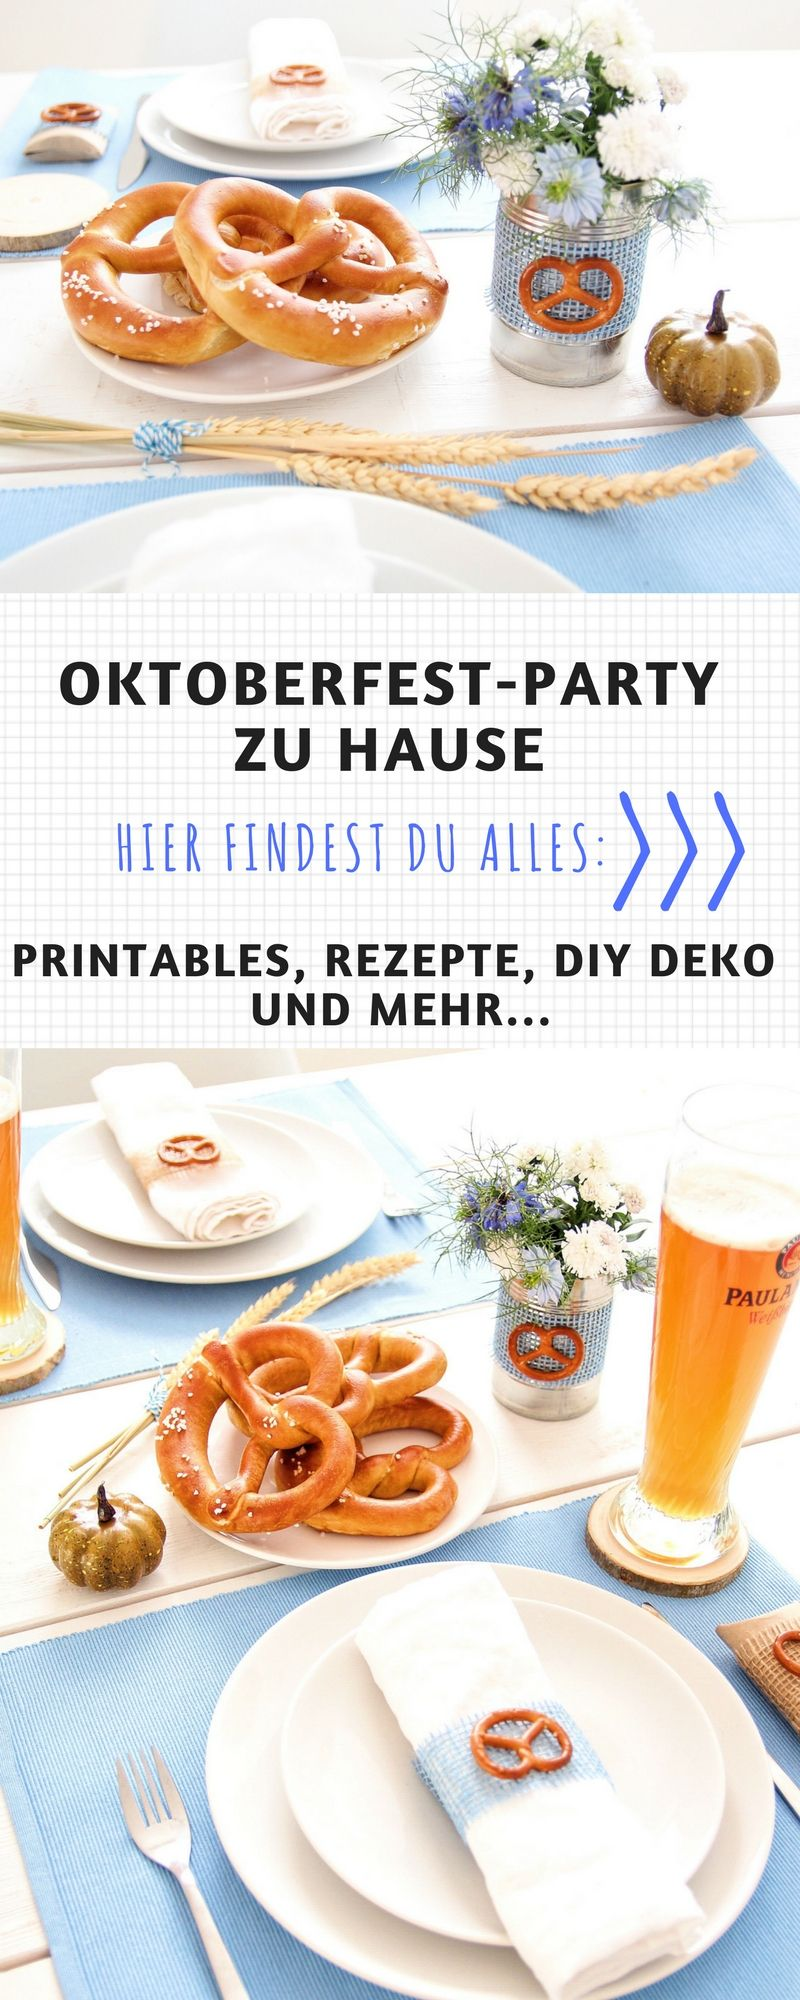 Oktoberfest Mottoparty Oktoberfest Party Zuhause For The Home Oktoberfest Decorations